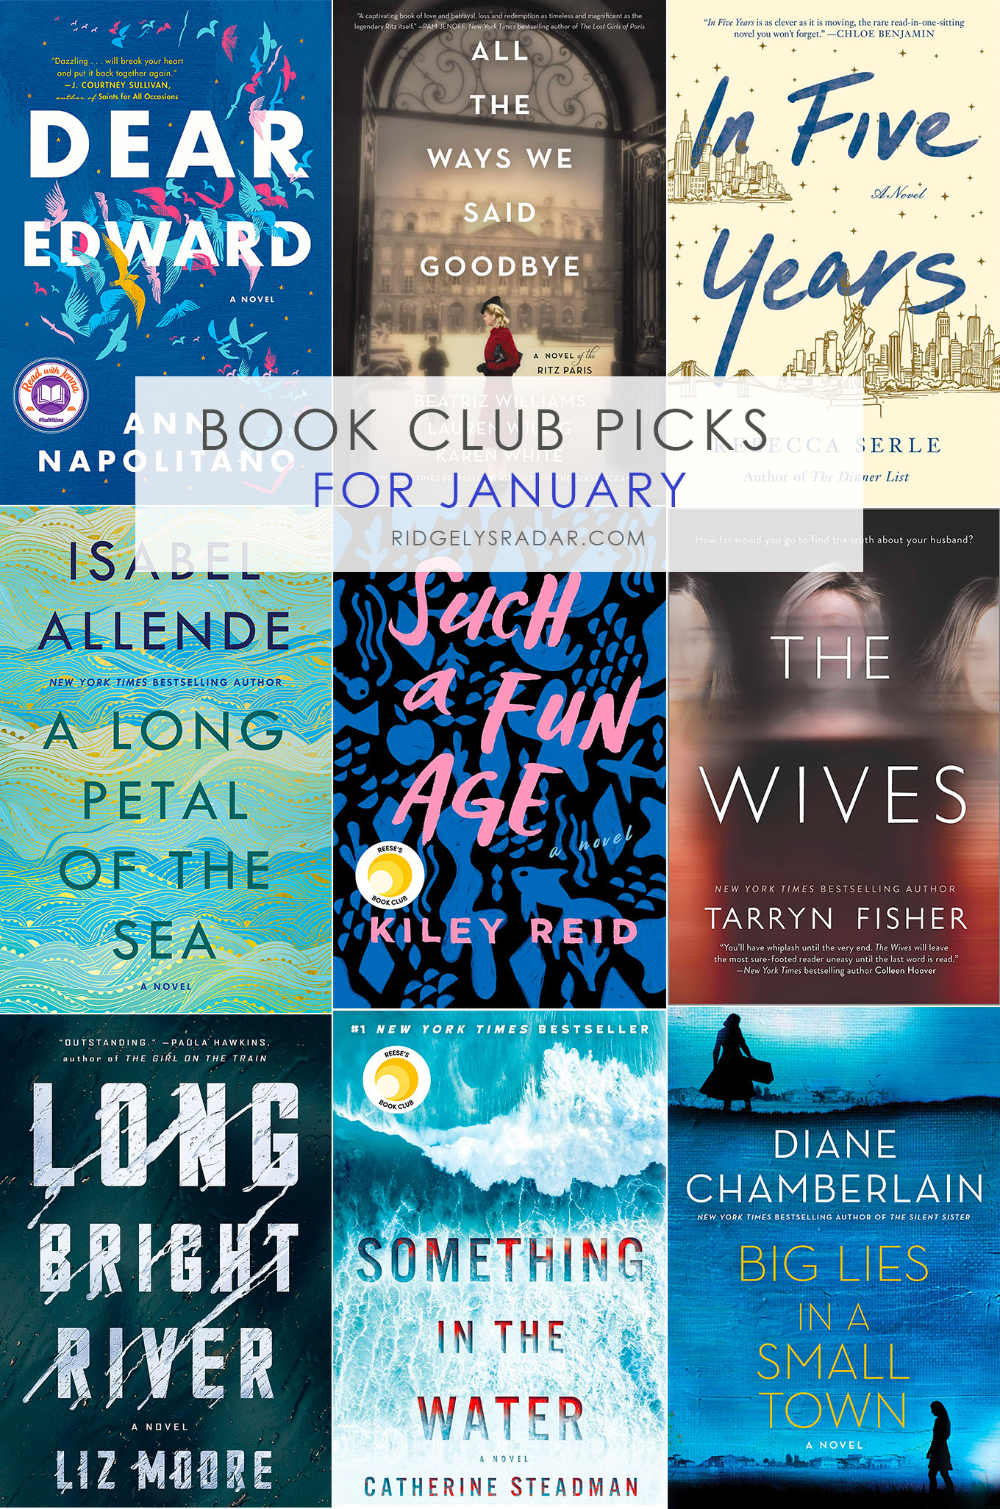 Book Club Books For January Ridgely S Radar In 2020 Book Club Books Book Club Sunshine Books